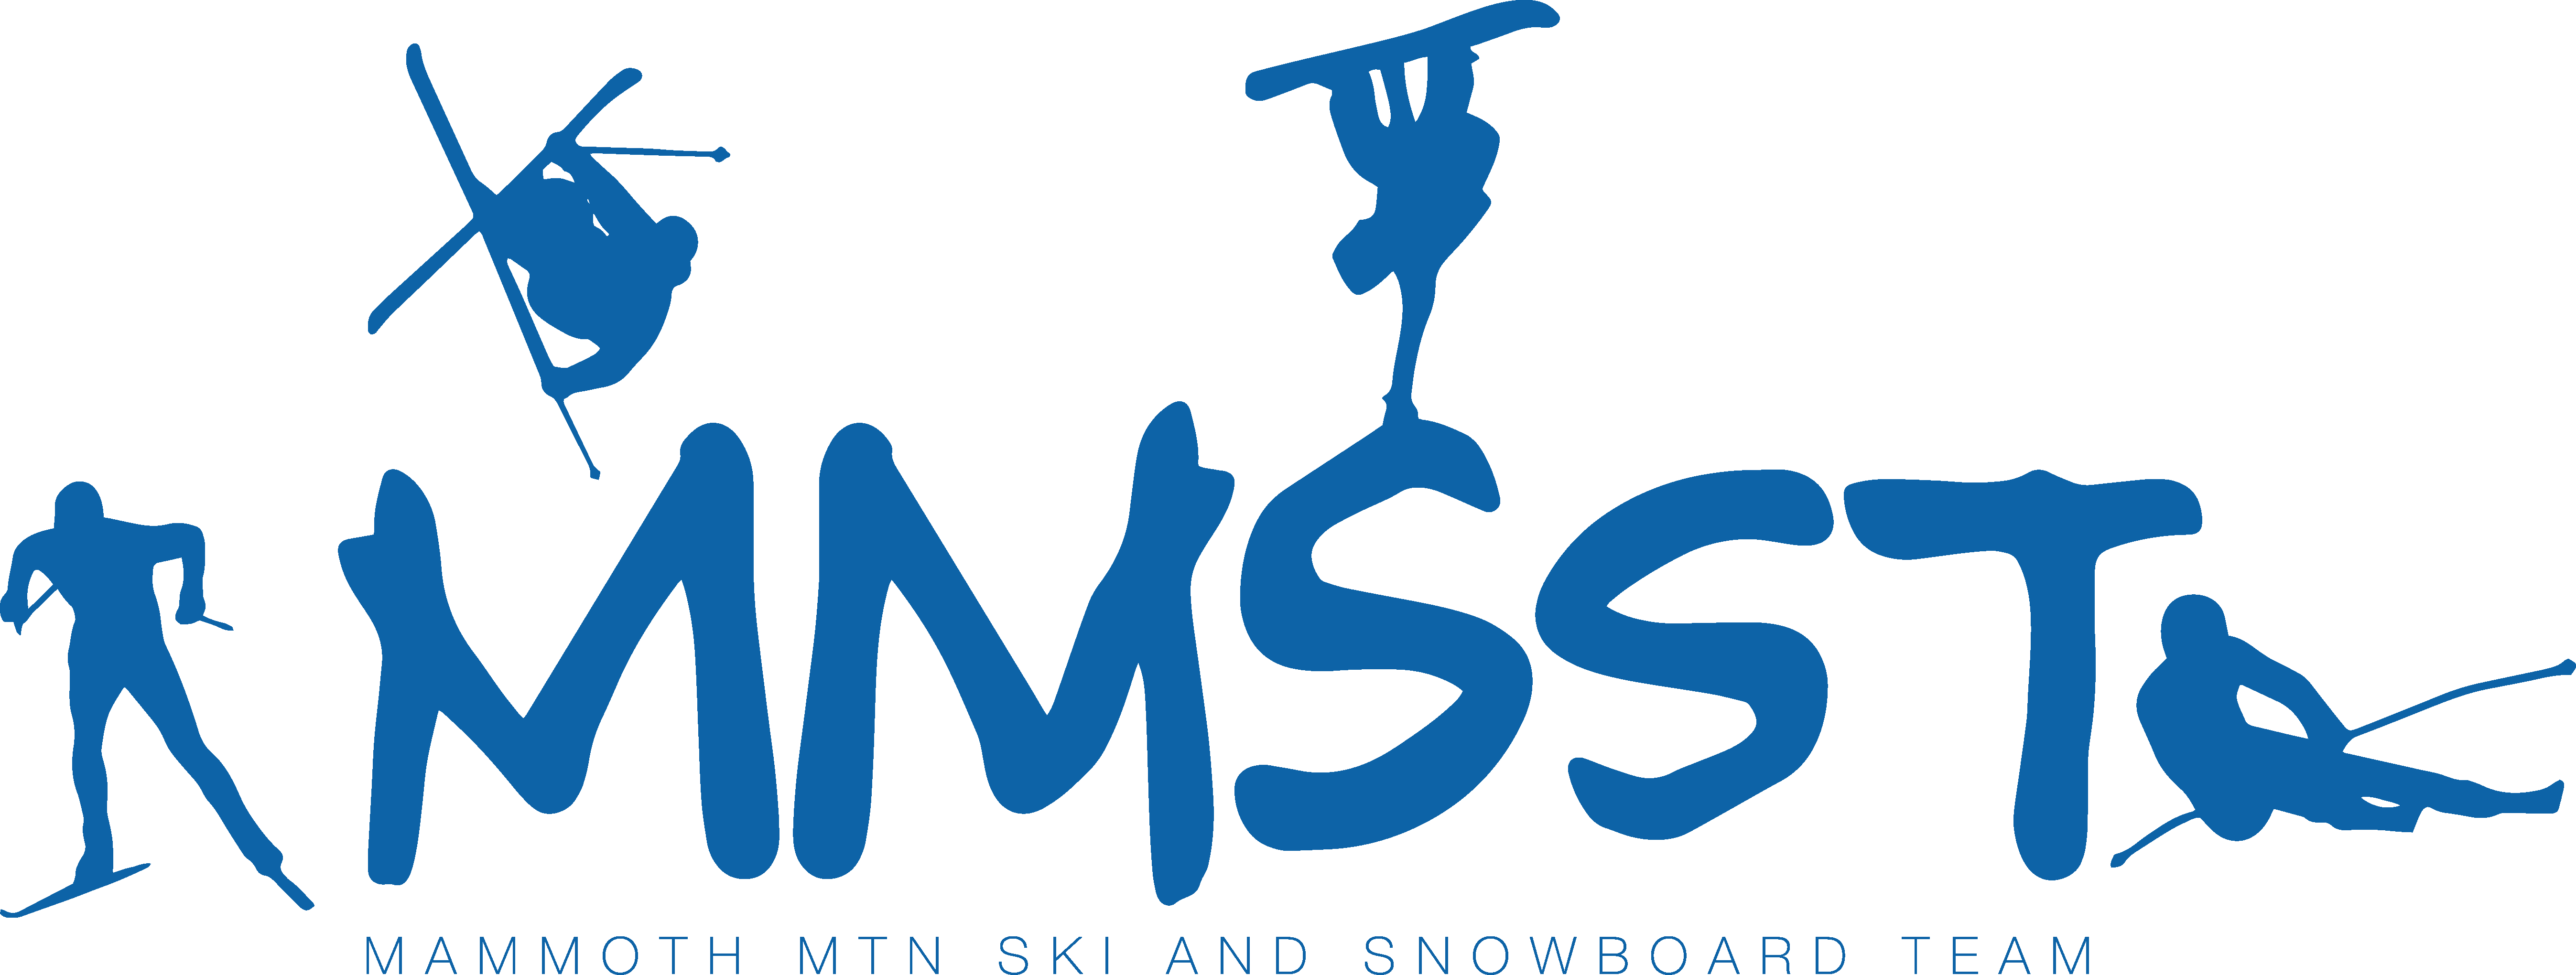 Mammoth Mountain Ski & Snowboard Team Logo